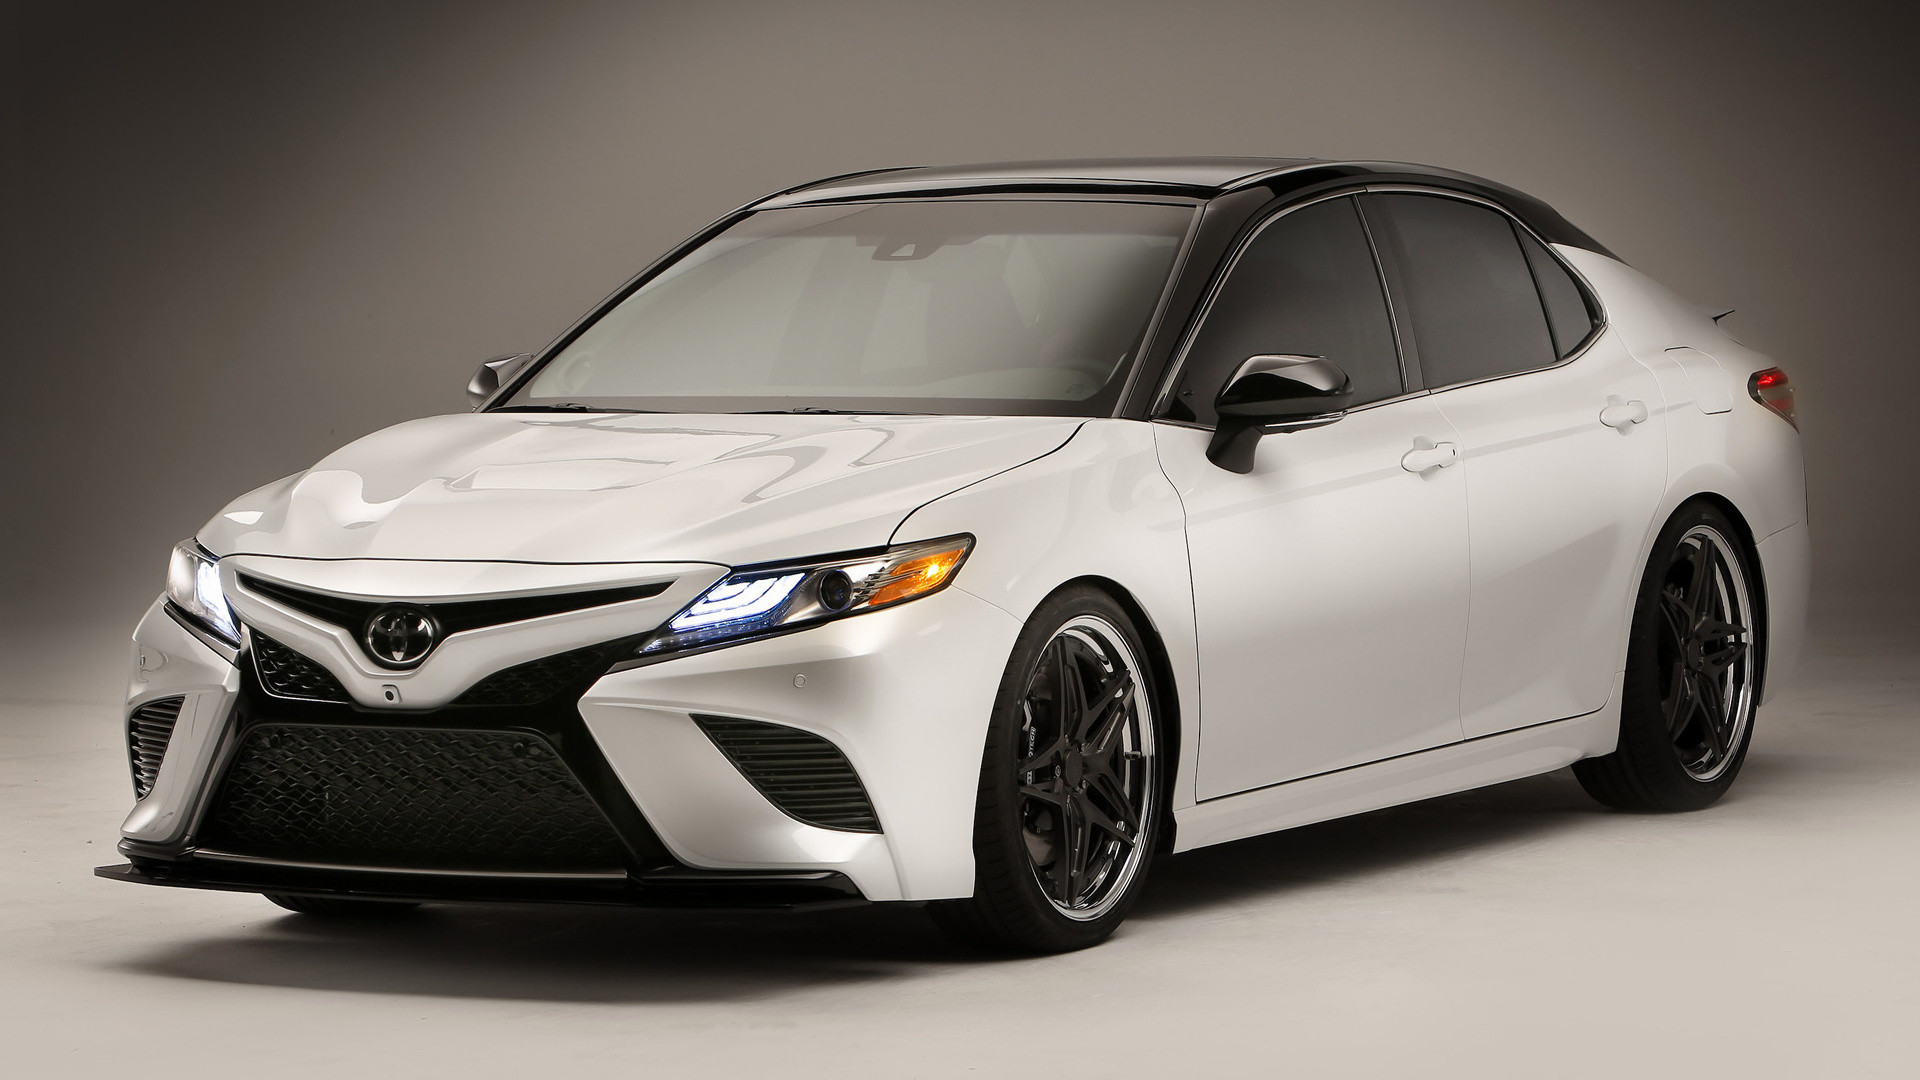 Res: 1920x1080, Vehicles - Toyota Camry Race Car White Car Car Wallpaper